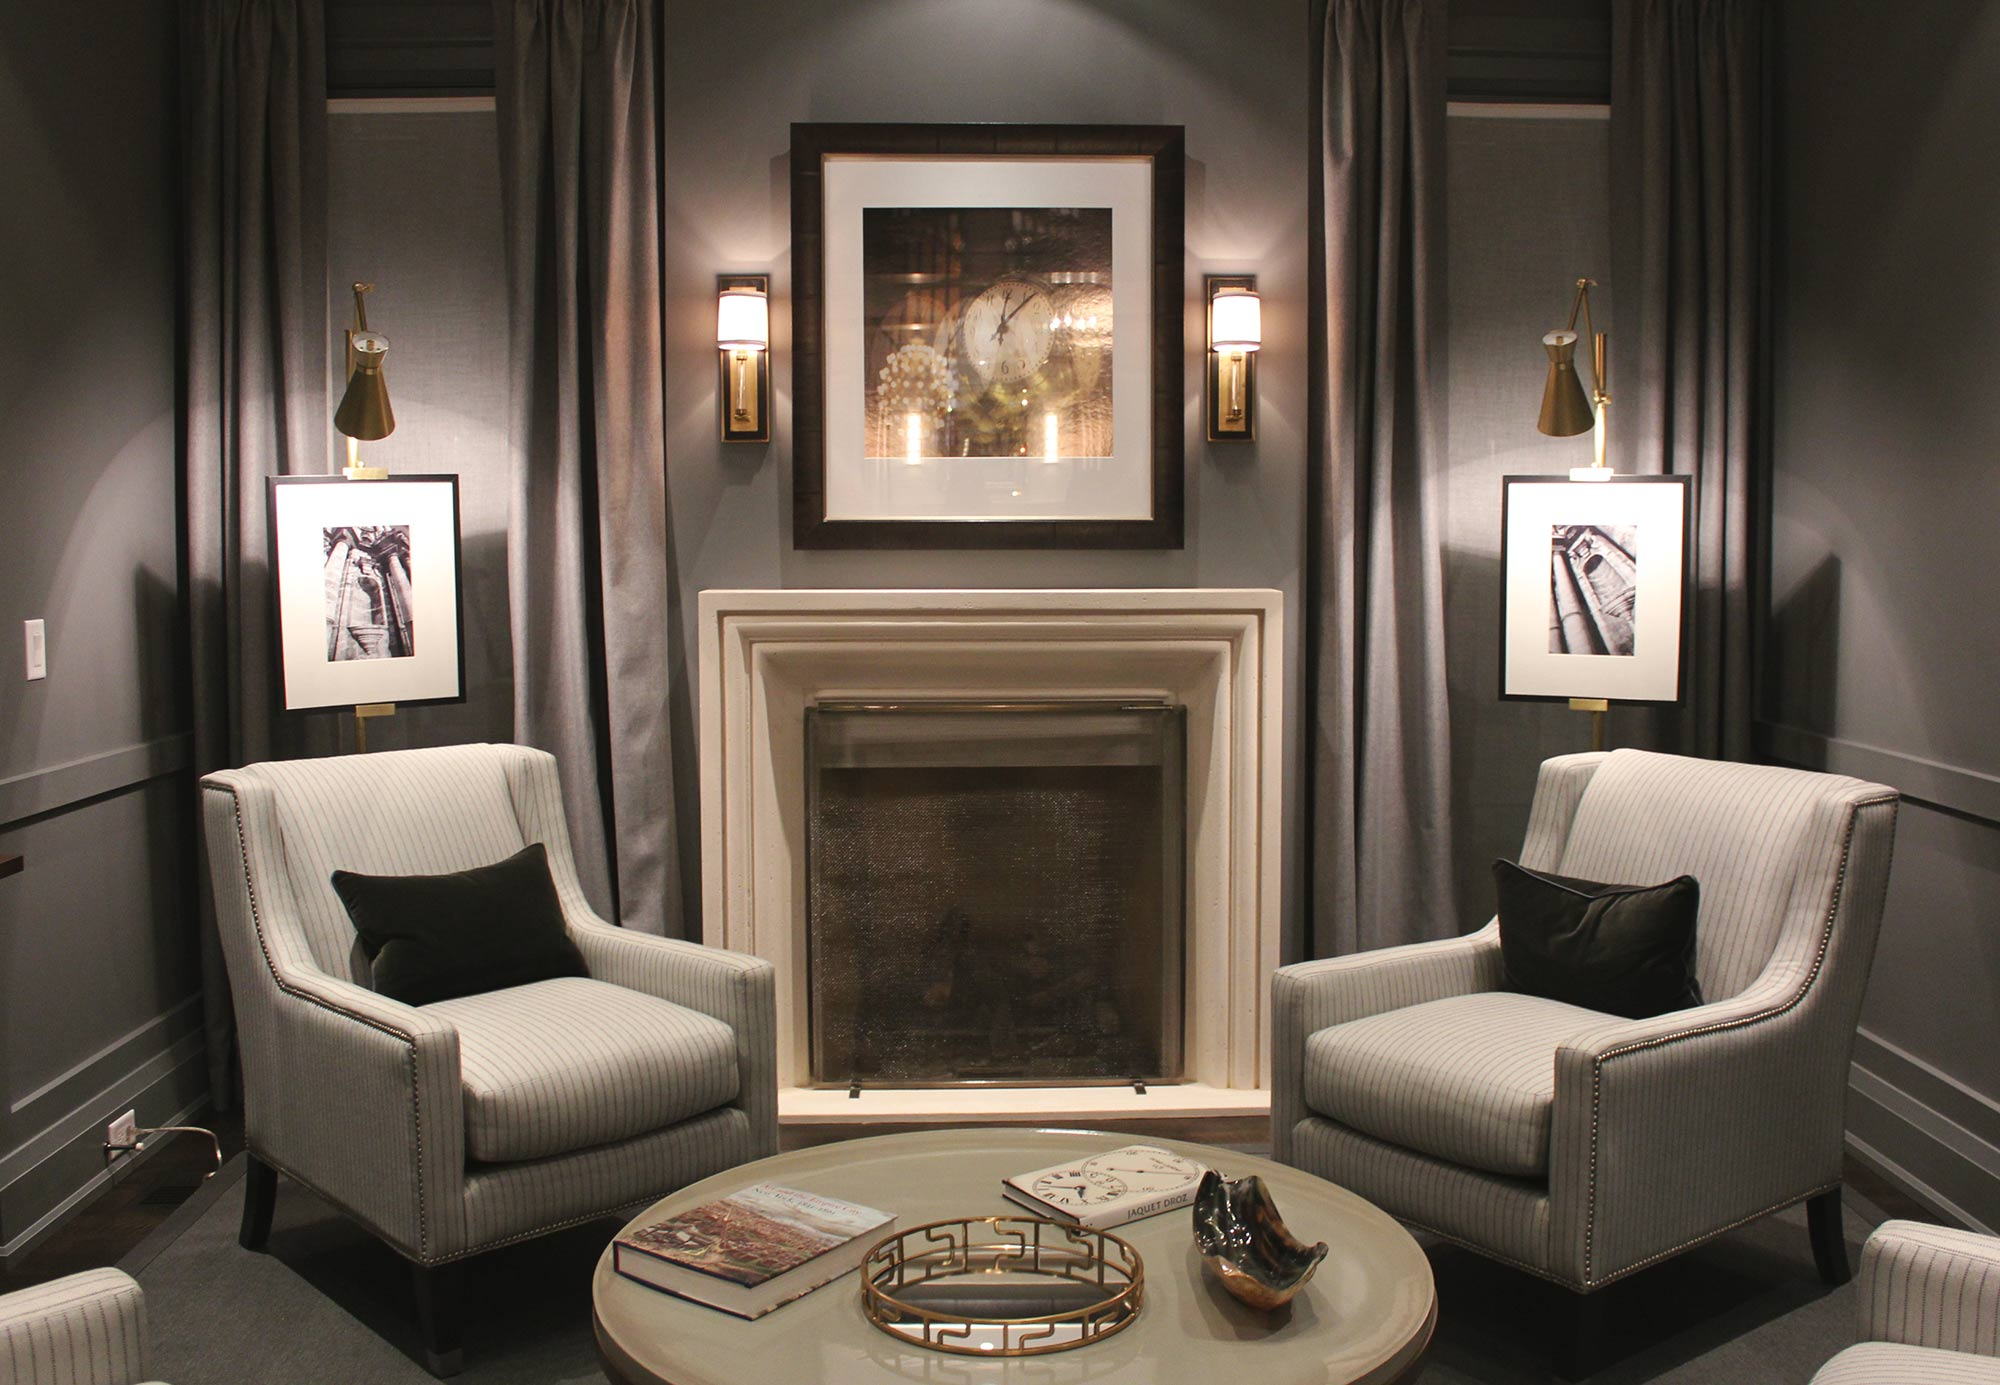 Example of Decorative Lighting at Oakville Dream Home